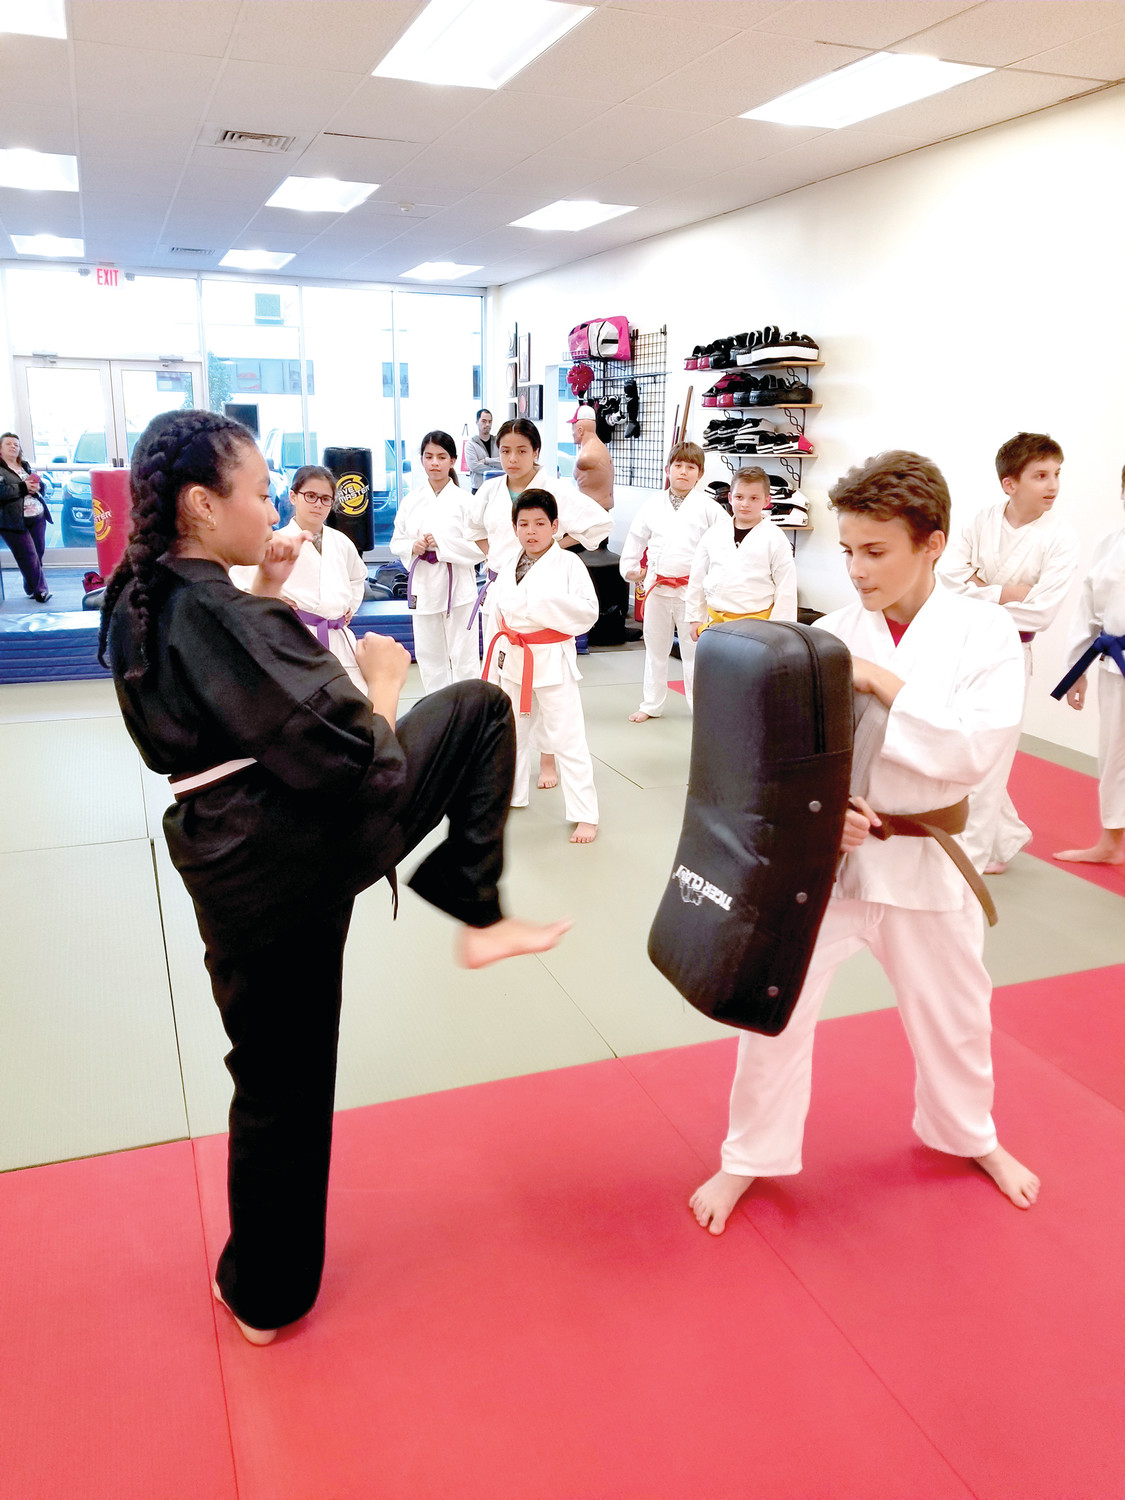 KARATE KIDS: Youngsters like Shirley Portillo will be in this position Saturday when the Derderian Academy of Martial Arts holds a unique Charity Kick-A-Thon that will benefit the American Cancer Society.